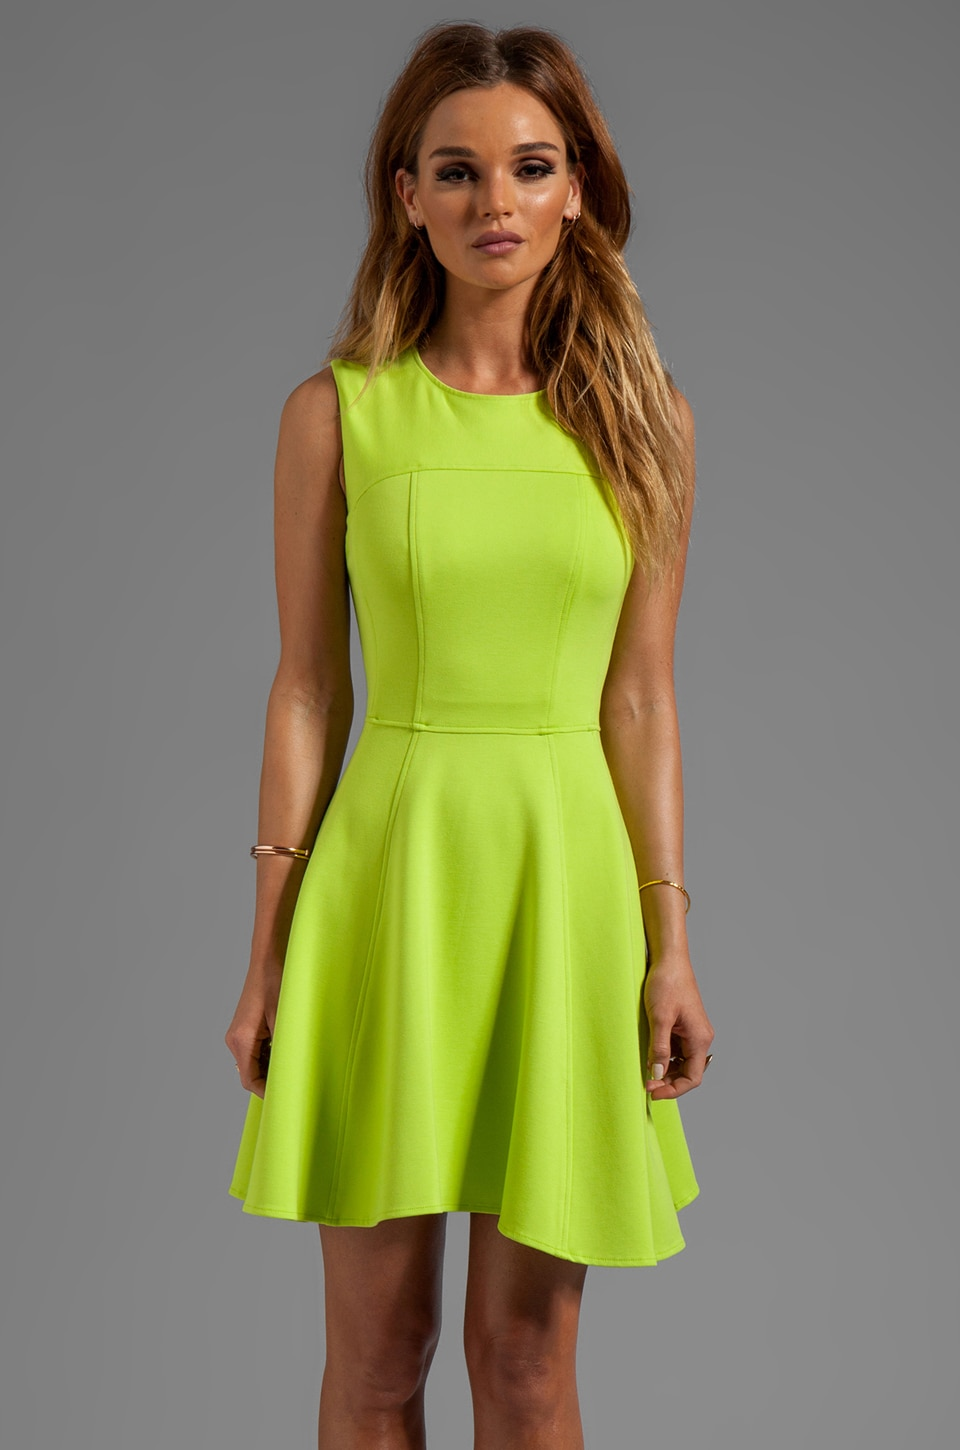 Nanette Lepore Superslide Ponte Dress in Lime